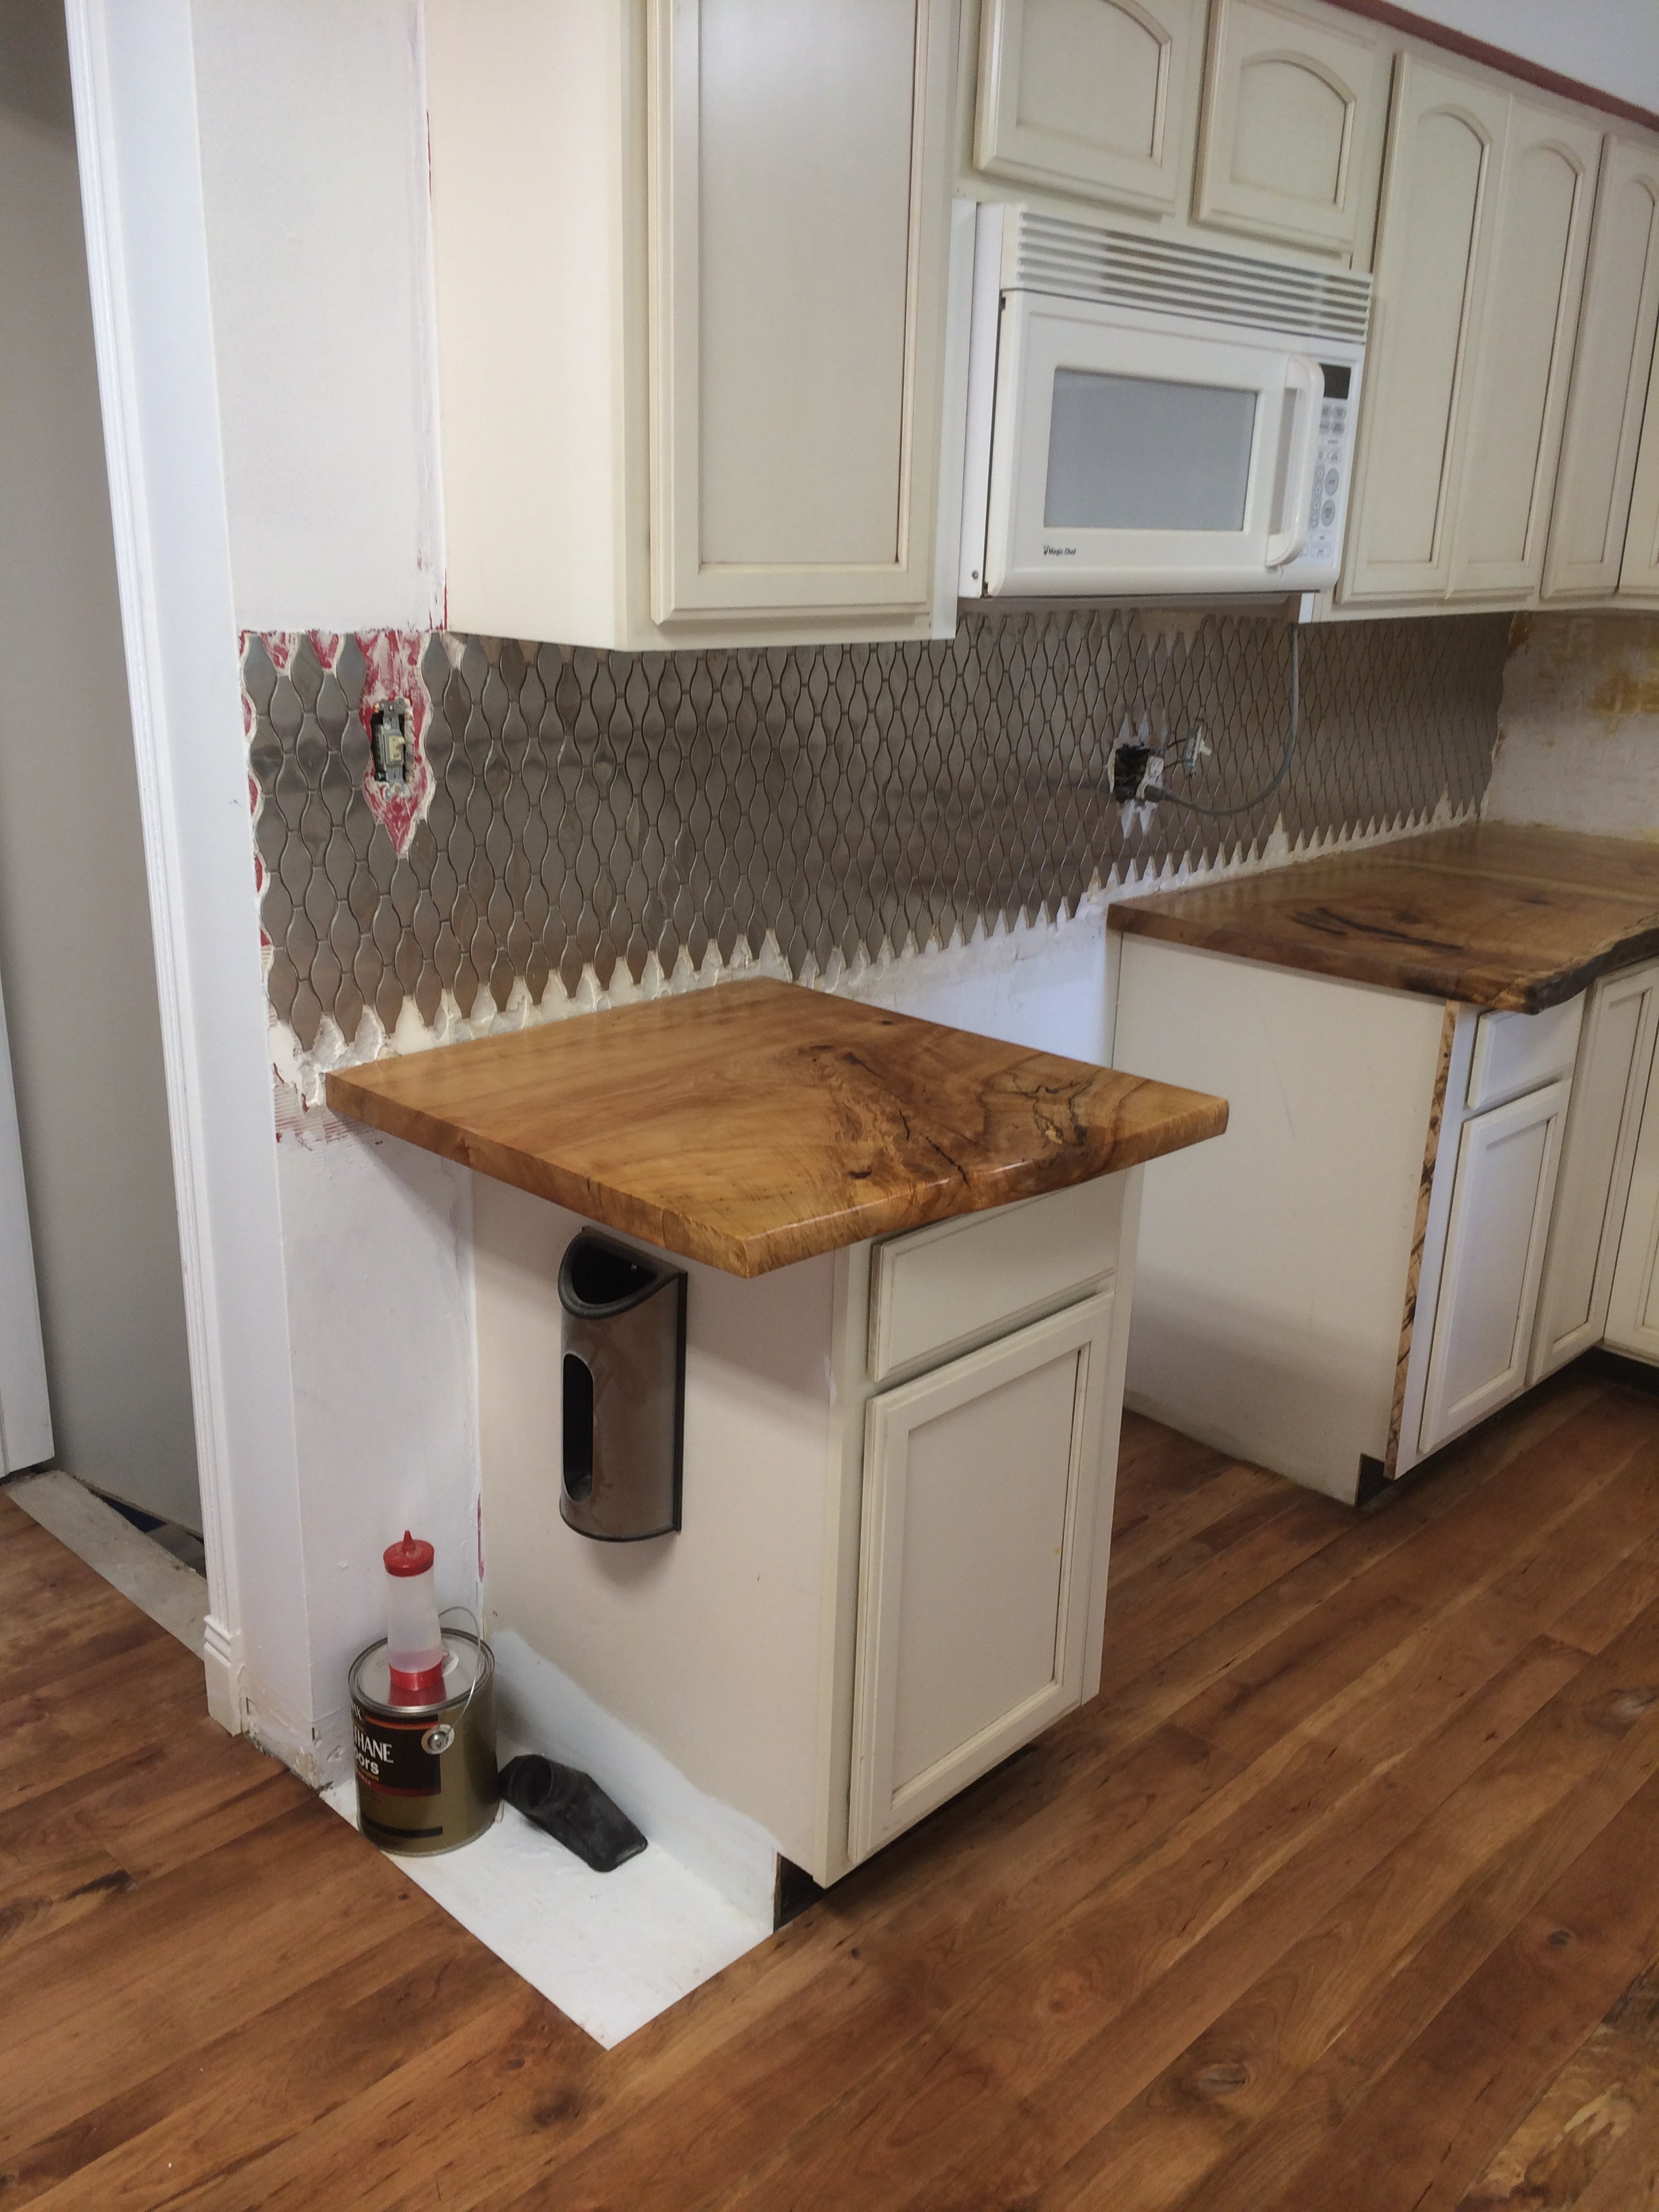 Live edge hard maple kitchen counter top